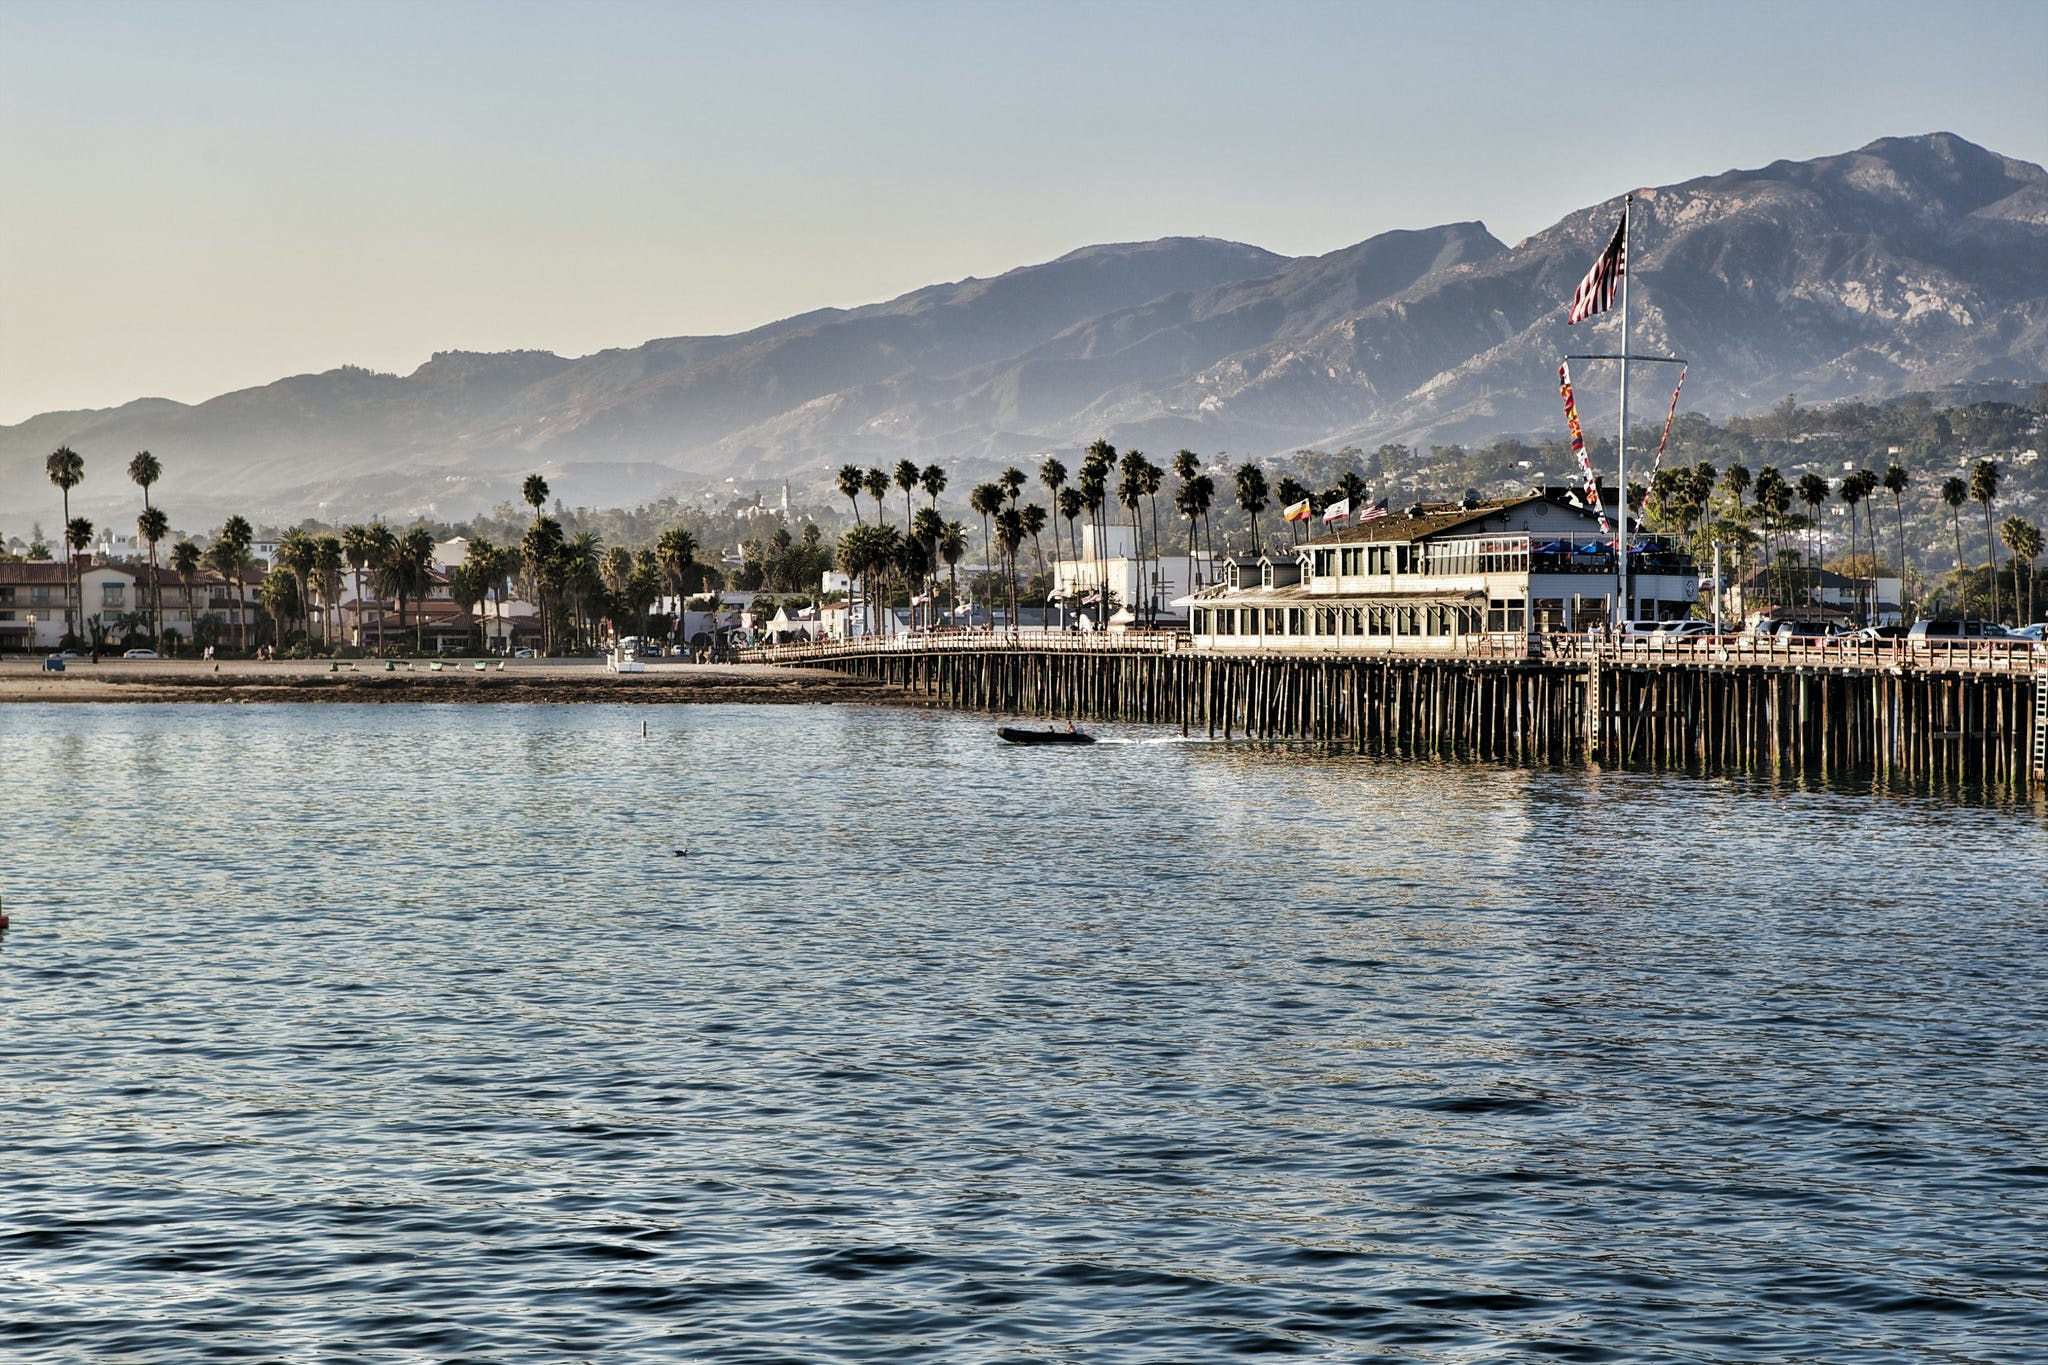 the pier on a sunny day in Santa Barbara